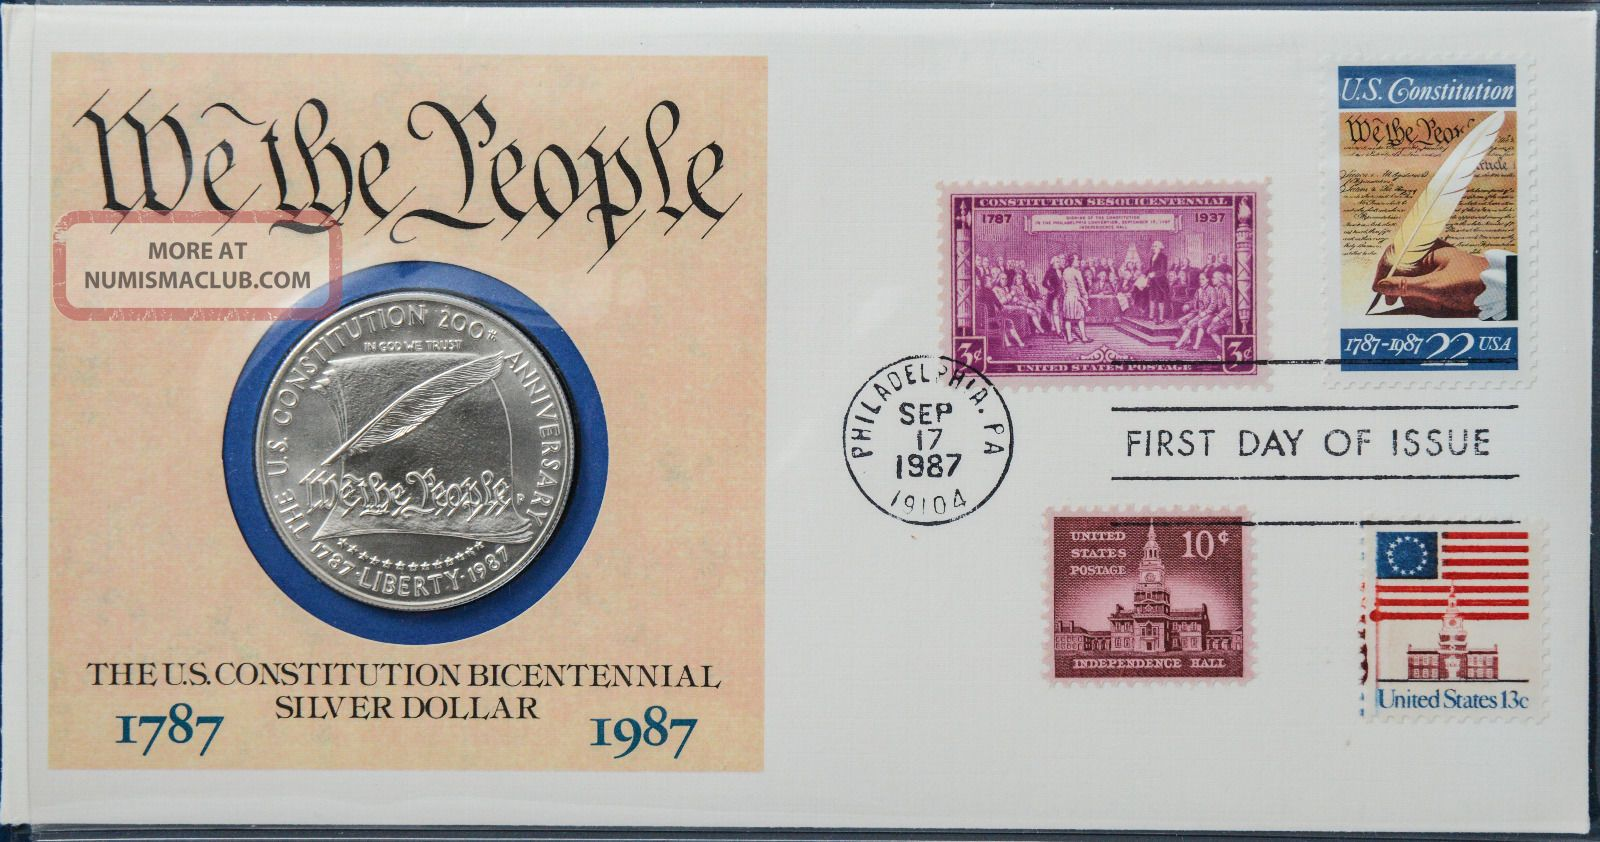 1987 Bicentennial Of The Constitution.  900 Silver Dollar Phila First Day Cover Exonumia photo